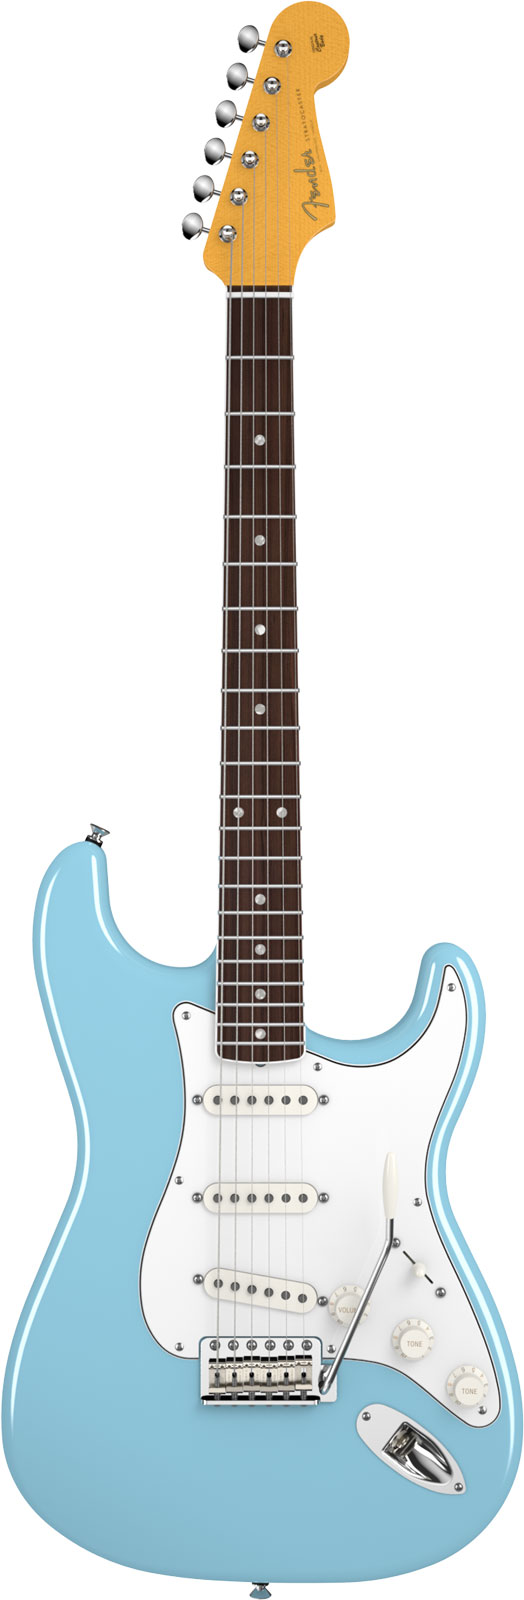 Fender Stratocaster Signature Eric Johnson Rn Tropical Turquoise + Etui